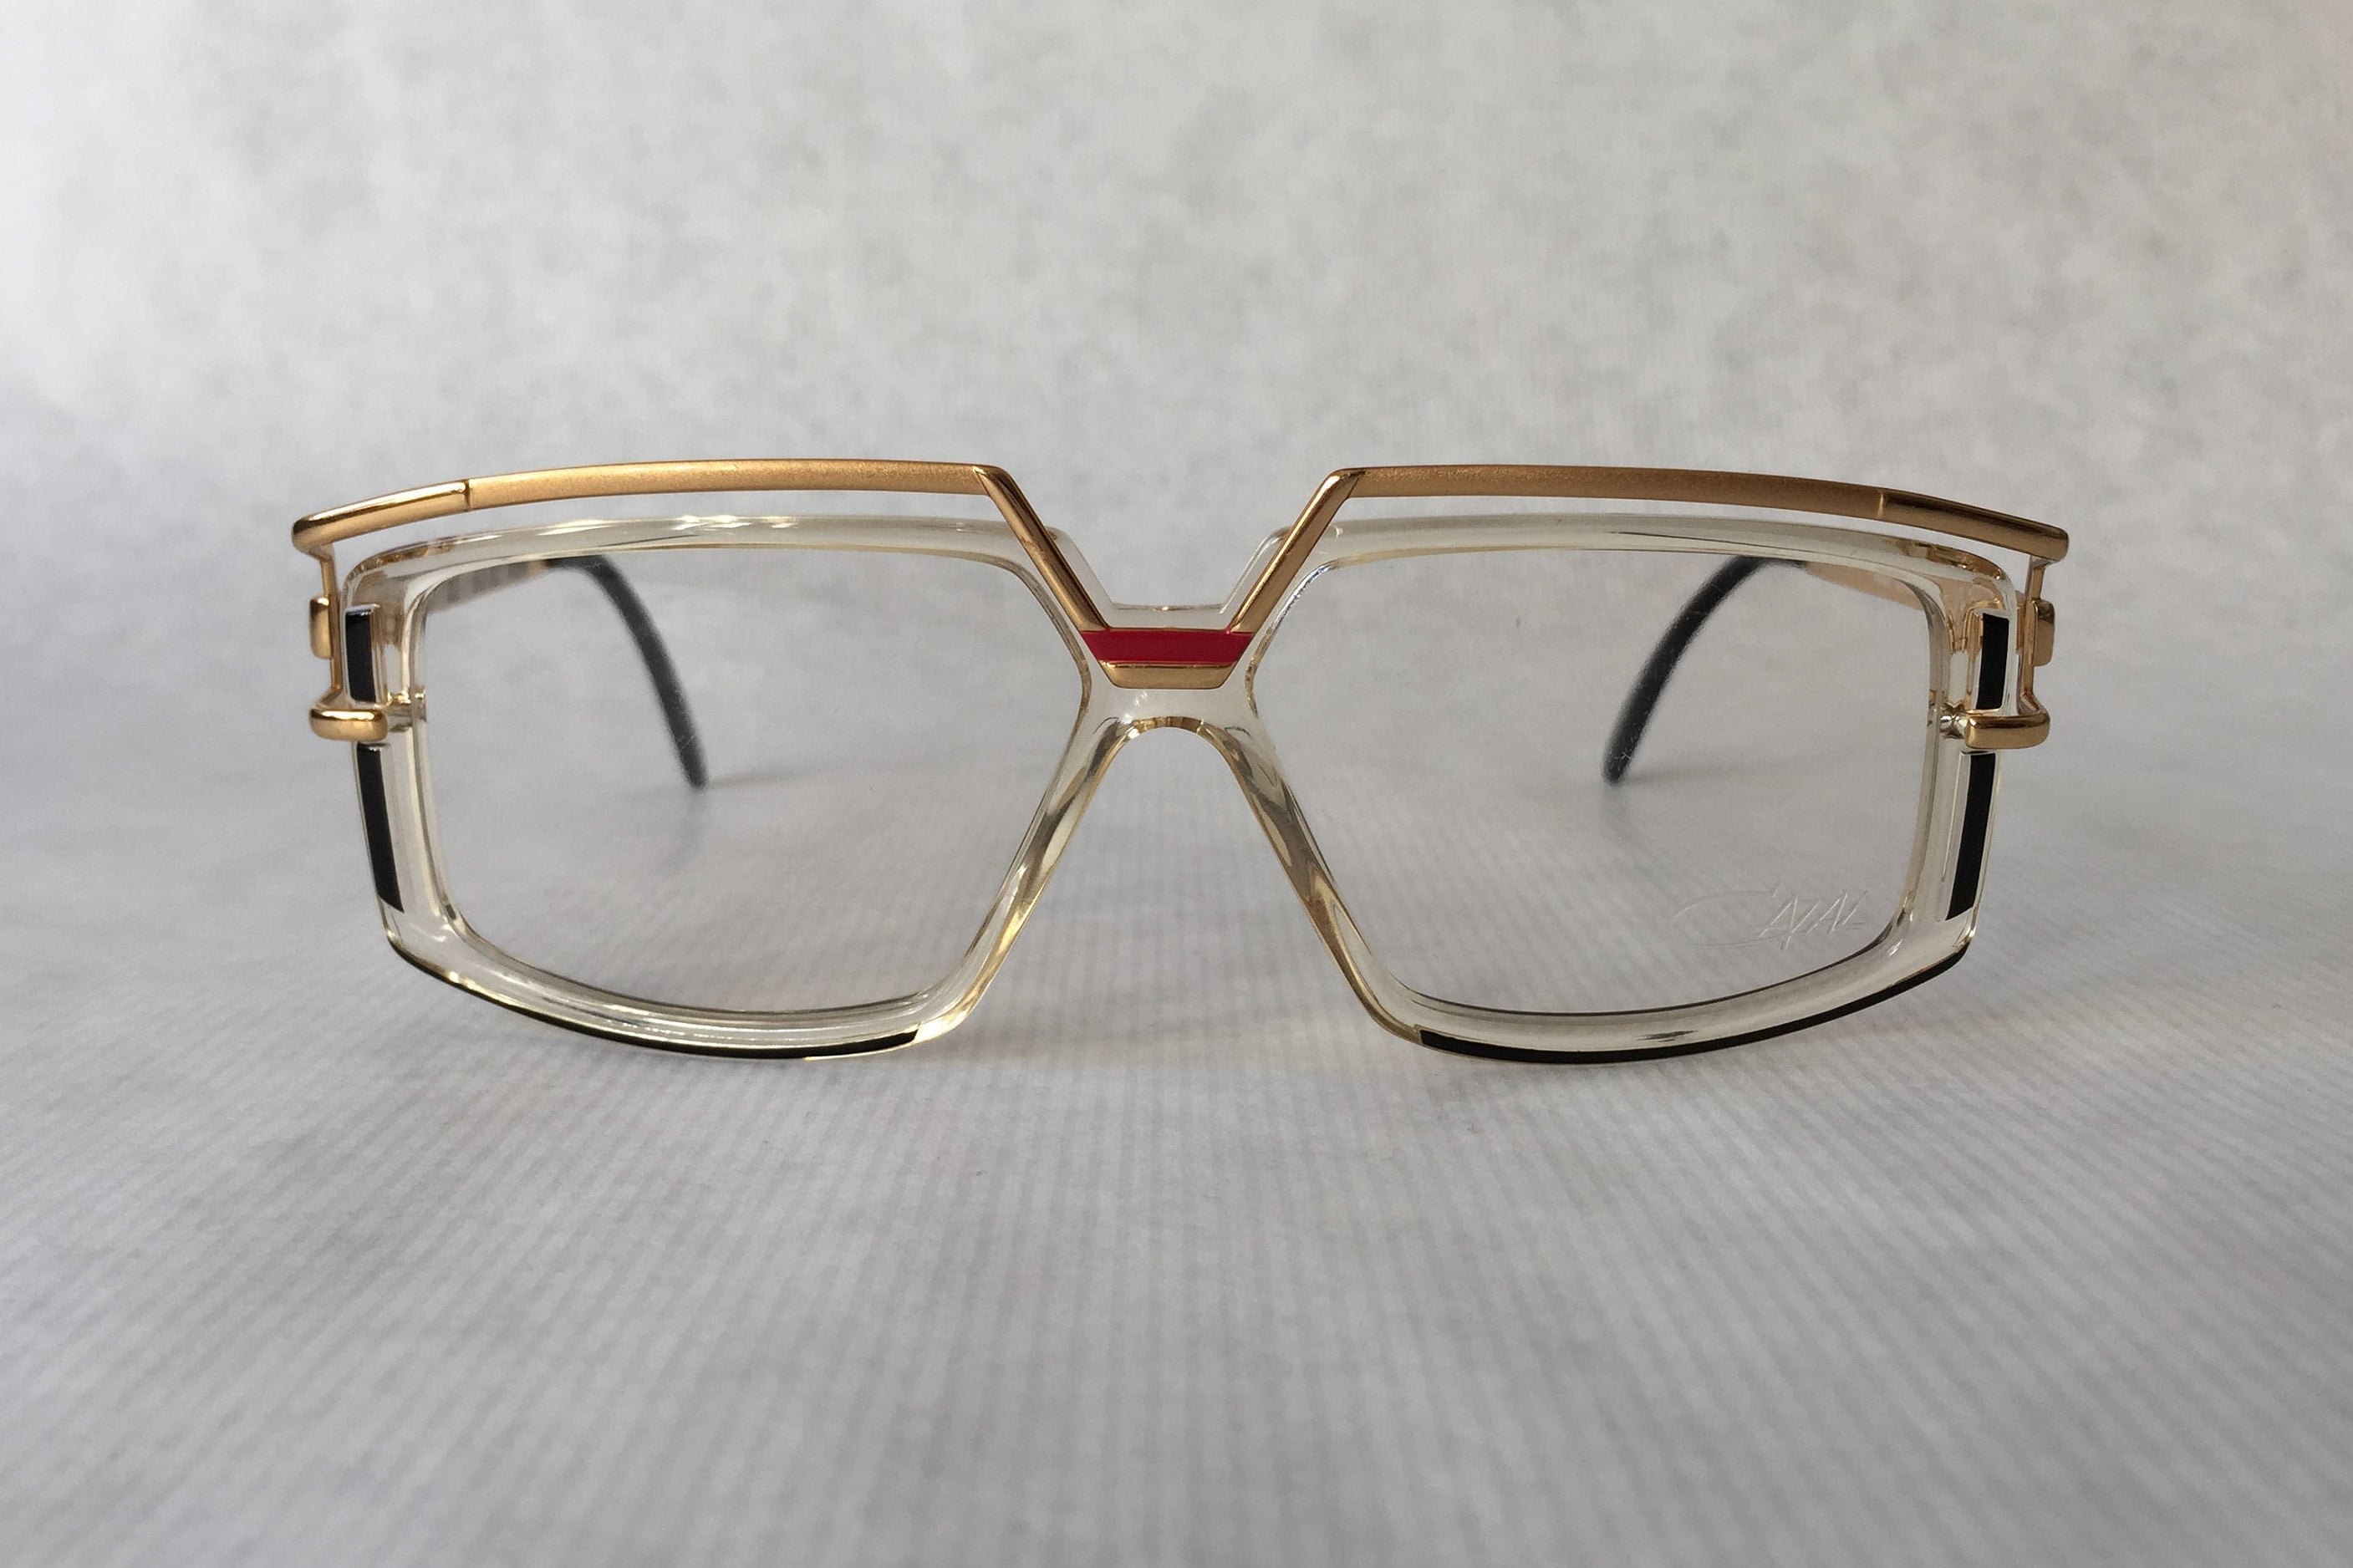 bc38684db9 Cazal 329 Col 212 Vintage Eyeglasses New Unworn Deadstock Made ...